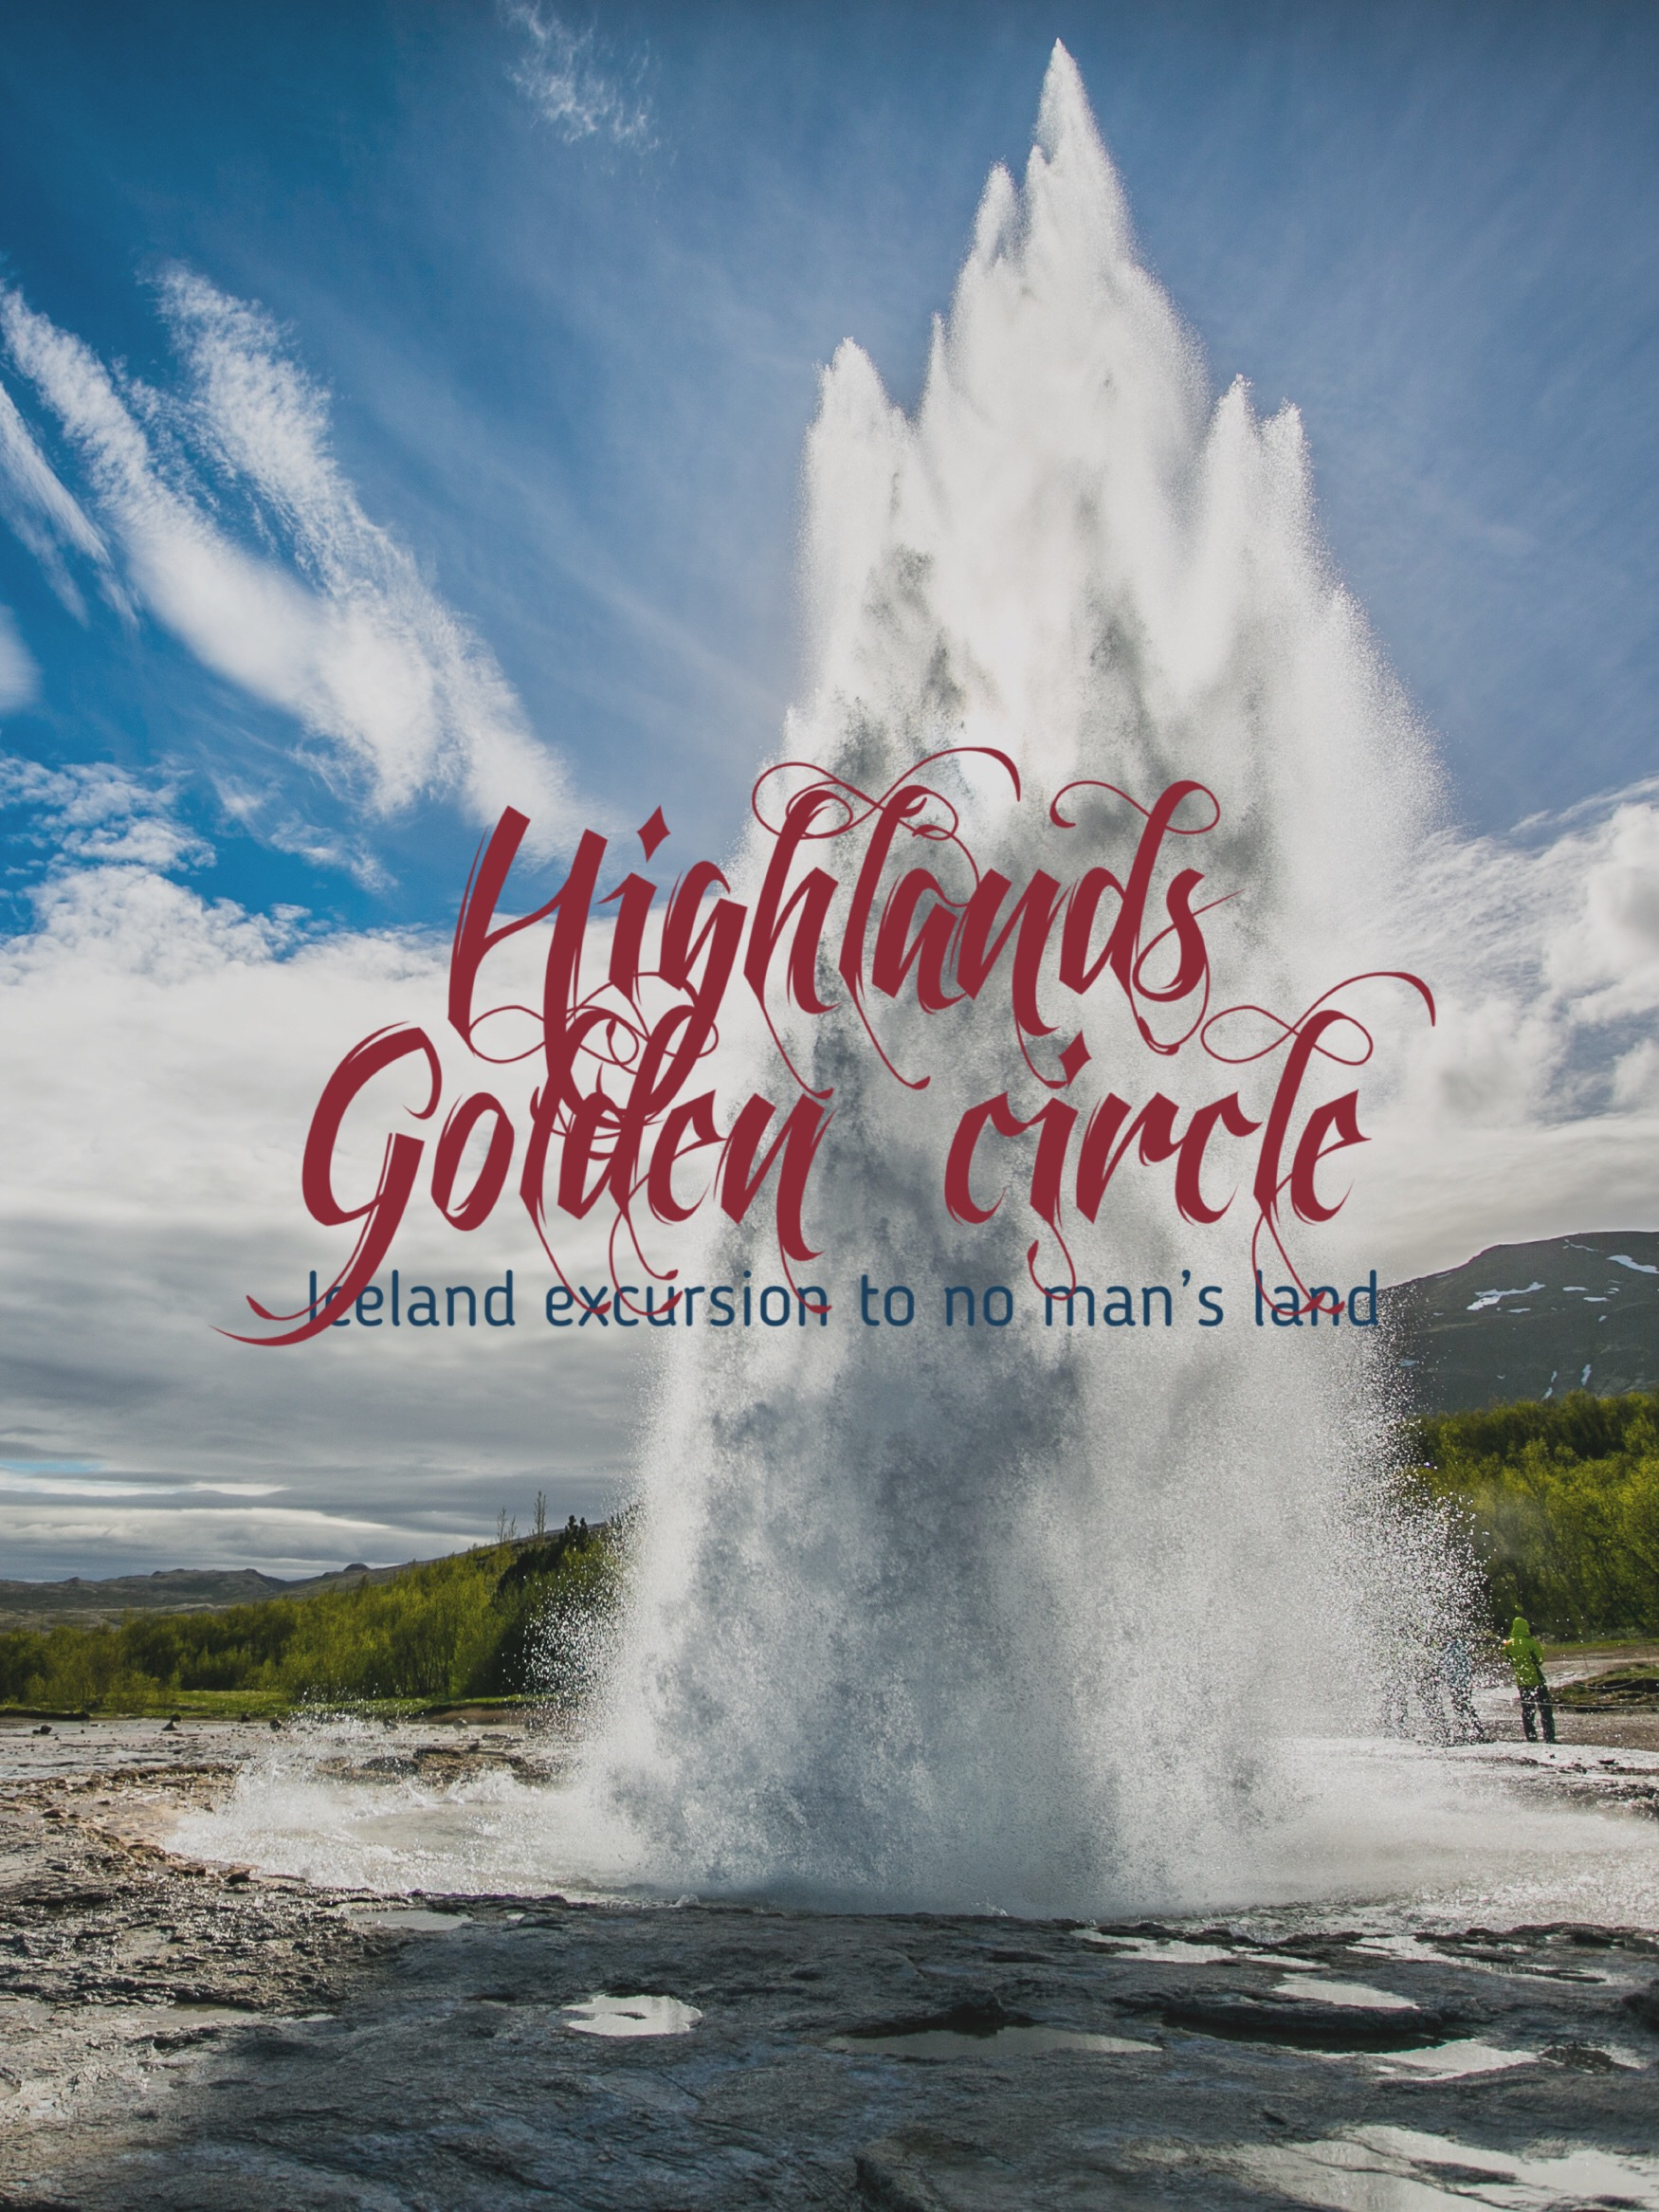 Things You Need to Know about the Highlands & Golden Circle in Iceland